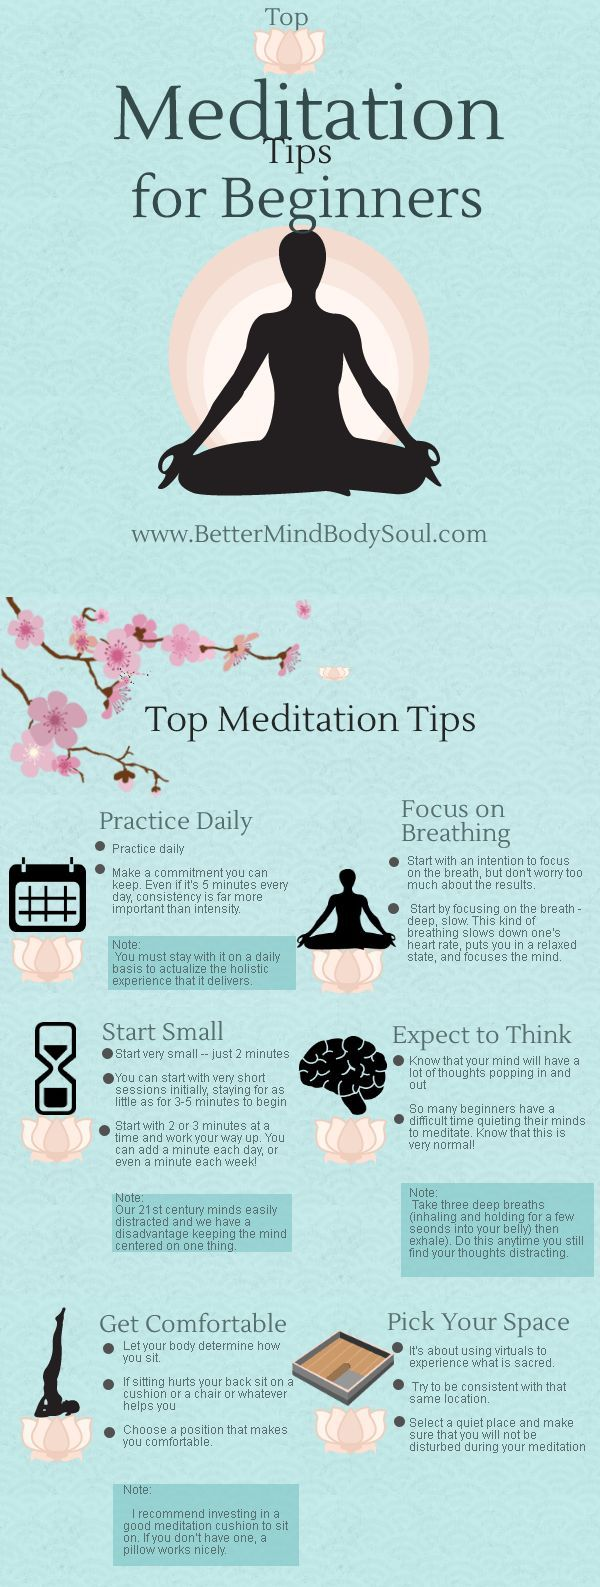 30 Meditation Tips For Beginners From Top Experts